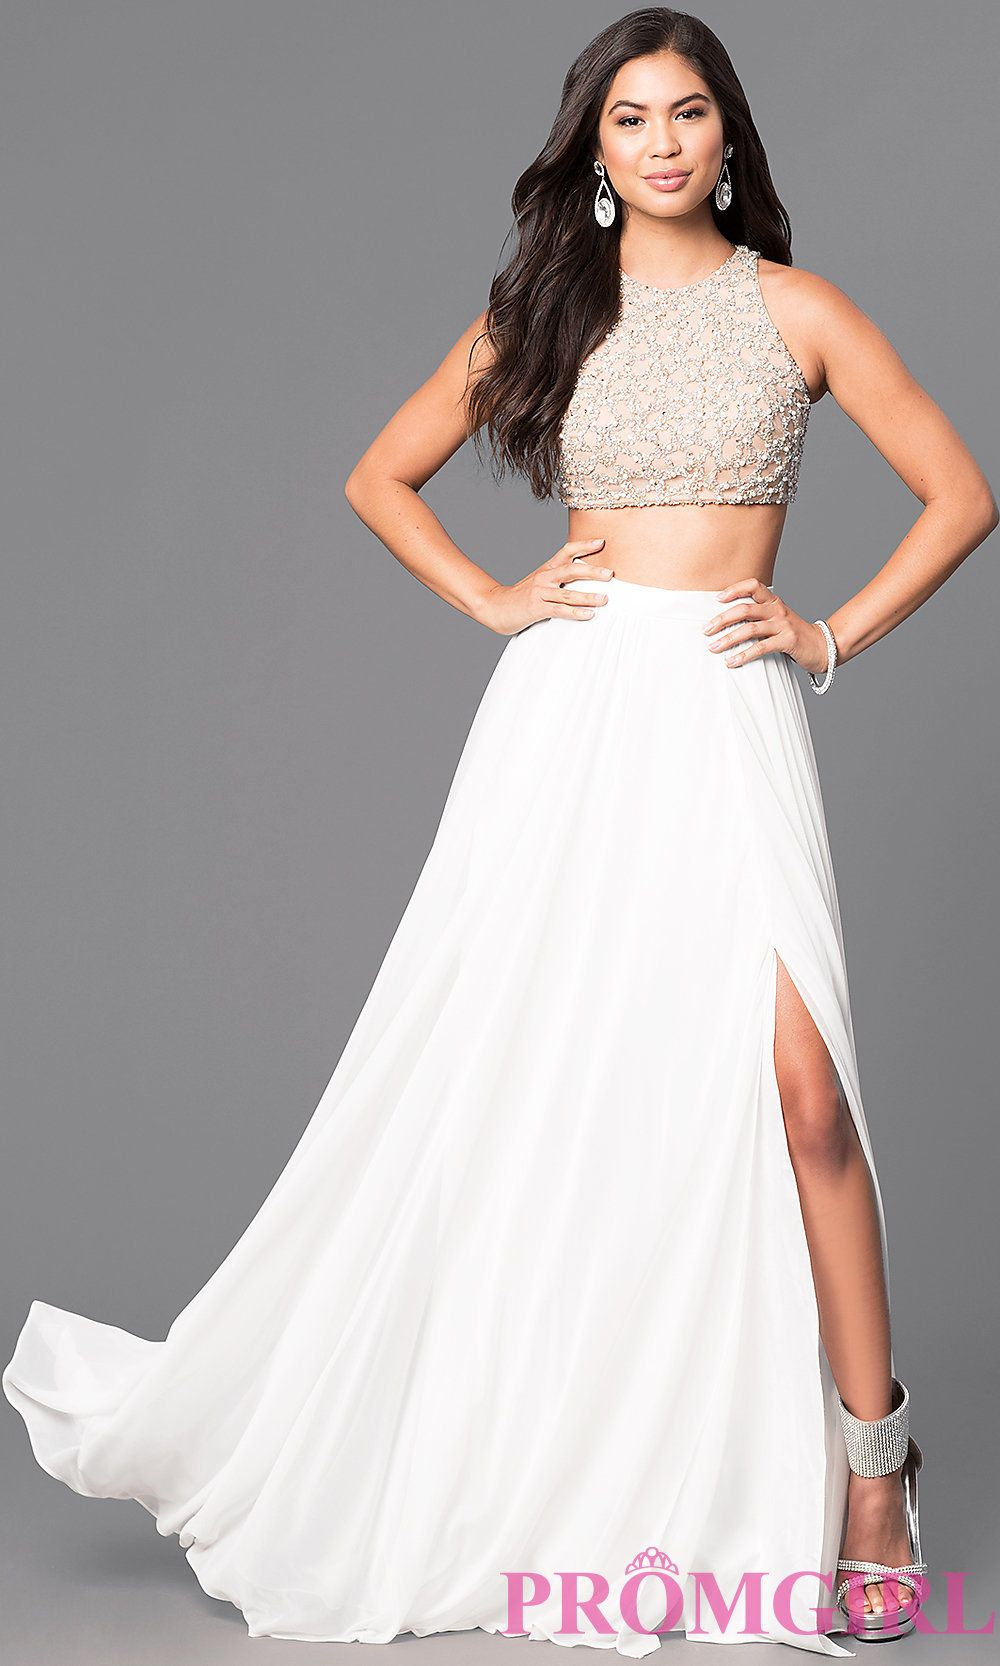 1a5de12bd483 Ivory Two-Piece Prom Dress with Embellished Top | A Girl Can Dream ...